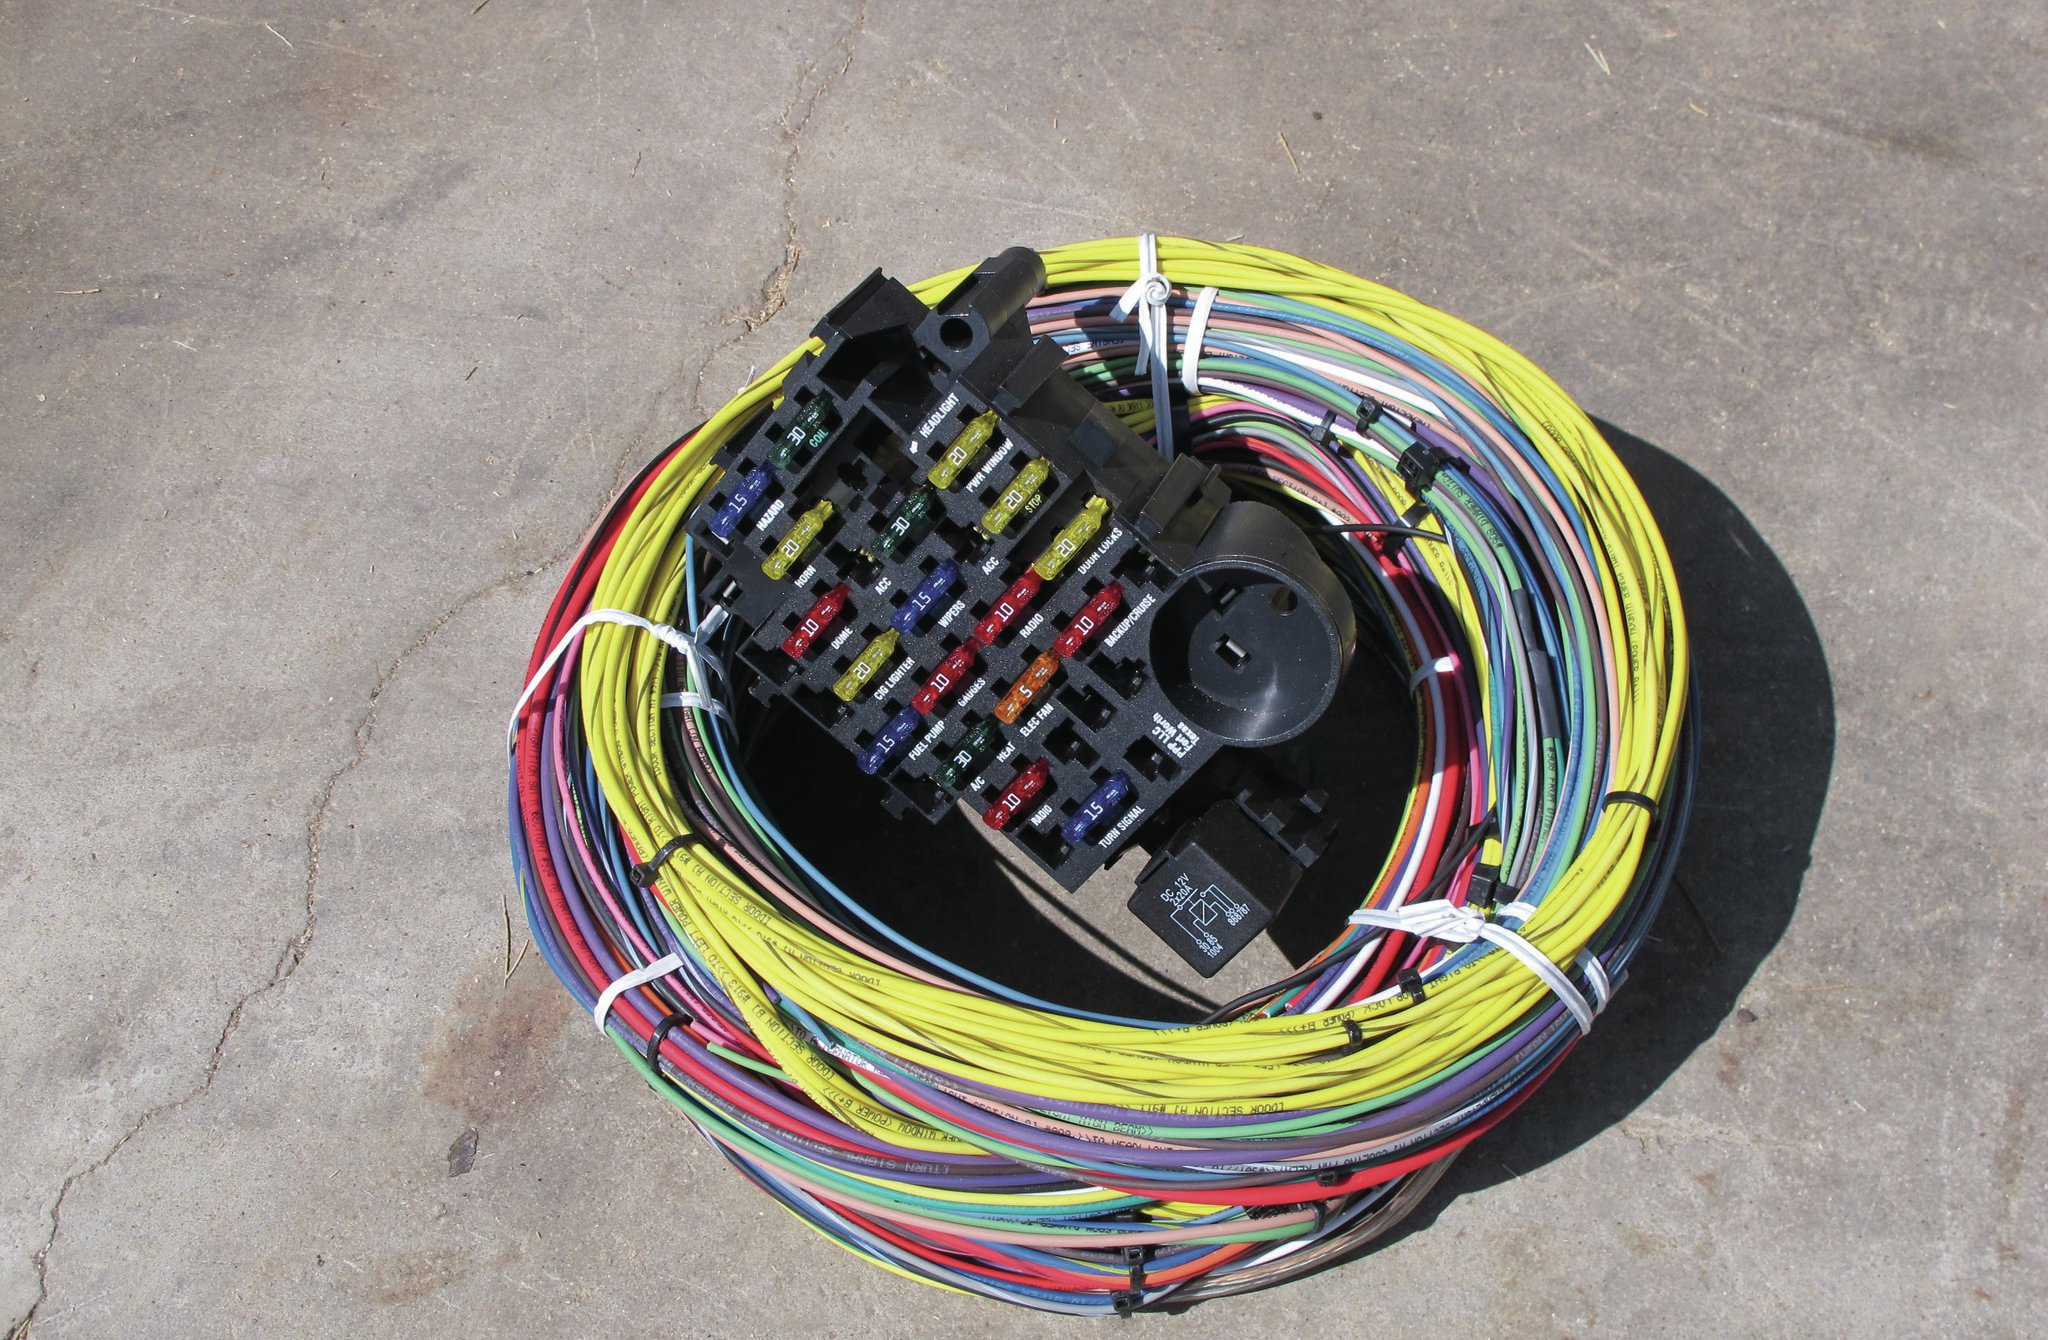 painless wiring kit - a very